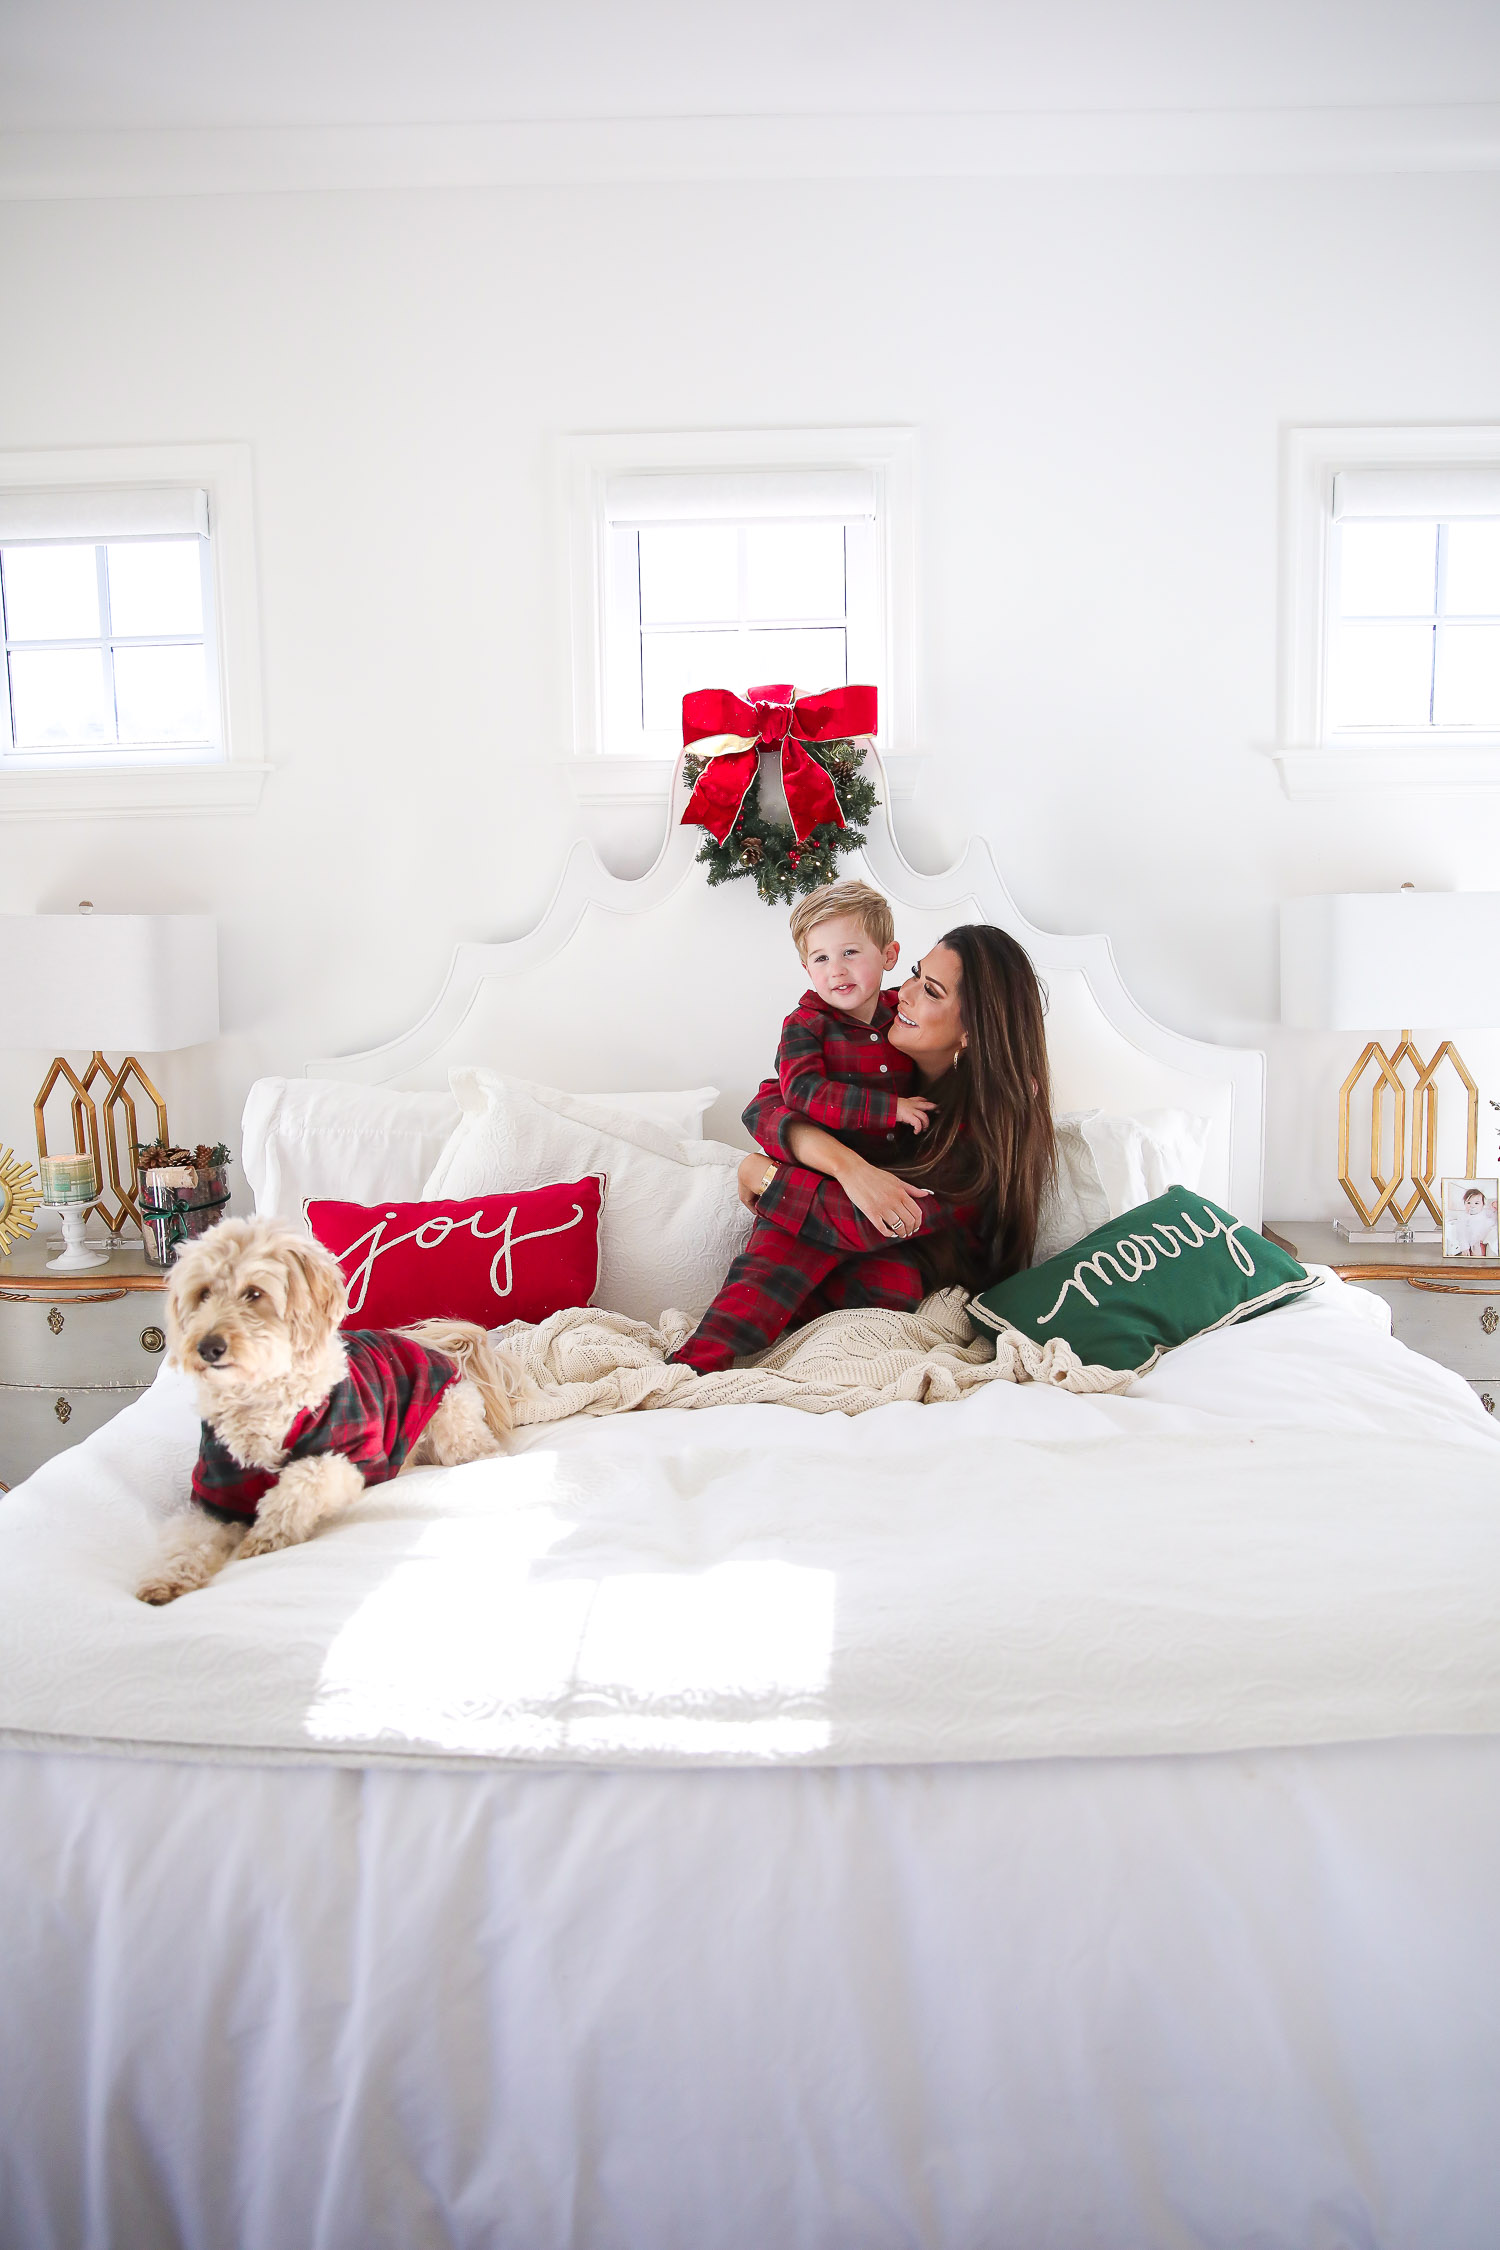 Matching Family Pajamas by popular US fashion blog, The Sweetest Thing: image of a Emily Gemma and her son sitting on a bed with white bedding, a joy throw pillow, a merry throw pillow and a mini Christmas wreath hanging on the headboard with their dog and wearing a The Company Store Family Flannel Company Cotton™ Womens Pajama Set, The Company Store Family Flannel Company Cotton™ Kids' Pajama Set, and The Company Store Family Flannel Company Cotton™ Dog Pajamas.